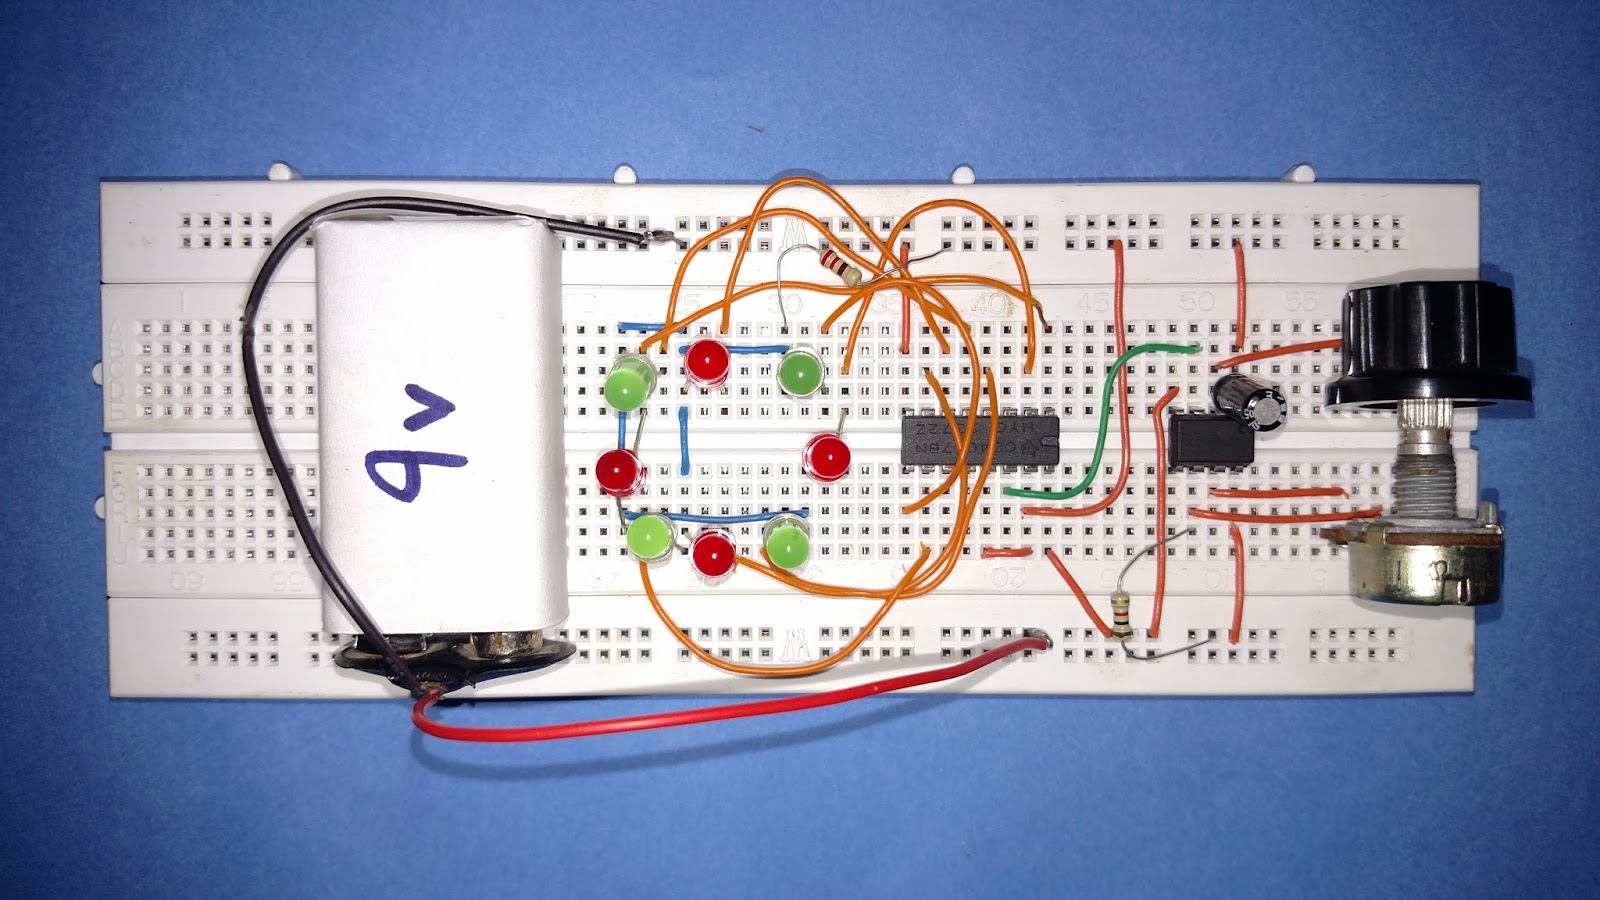 Led Roulette Circuit Diy Astable 555 Timer Ic Flasher Diagram Now We Will Connect The Leds In A Design Circle Shape As Used 8 Which Are Connected By Output Pins Of 4017 According To